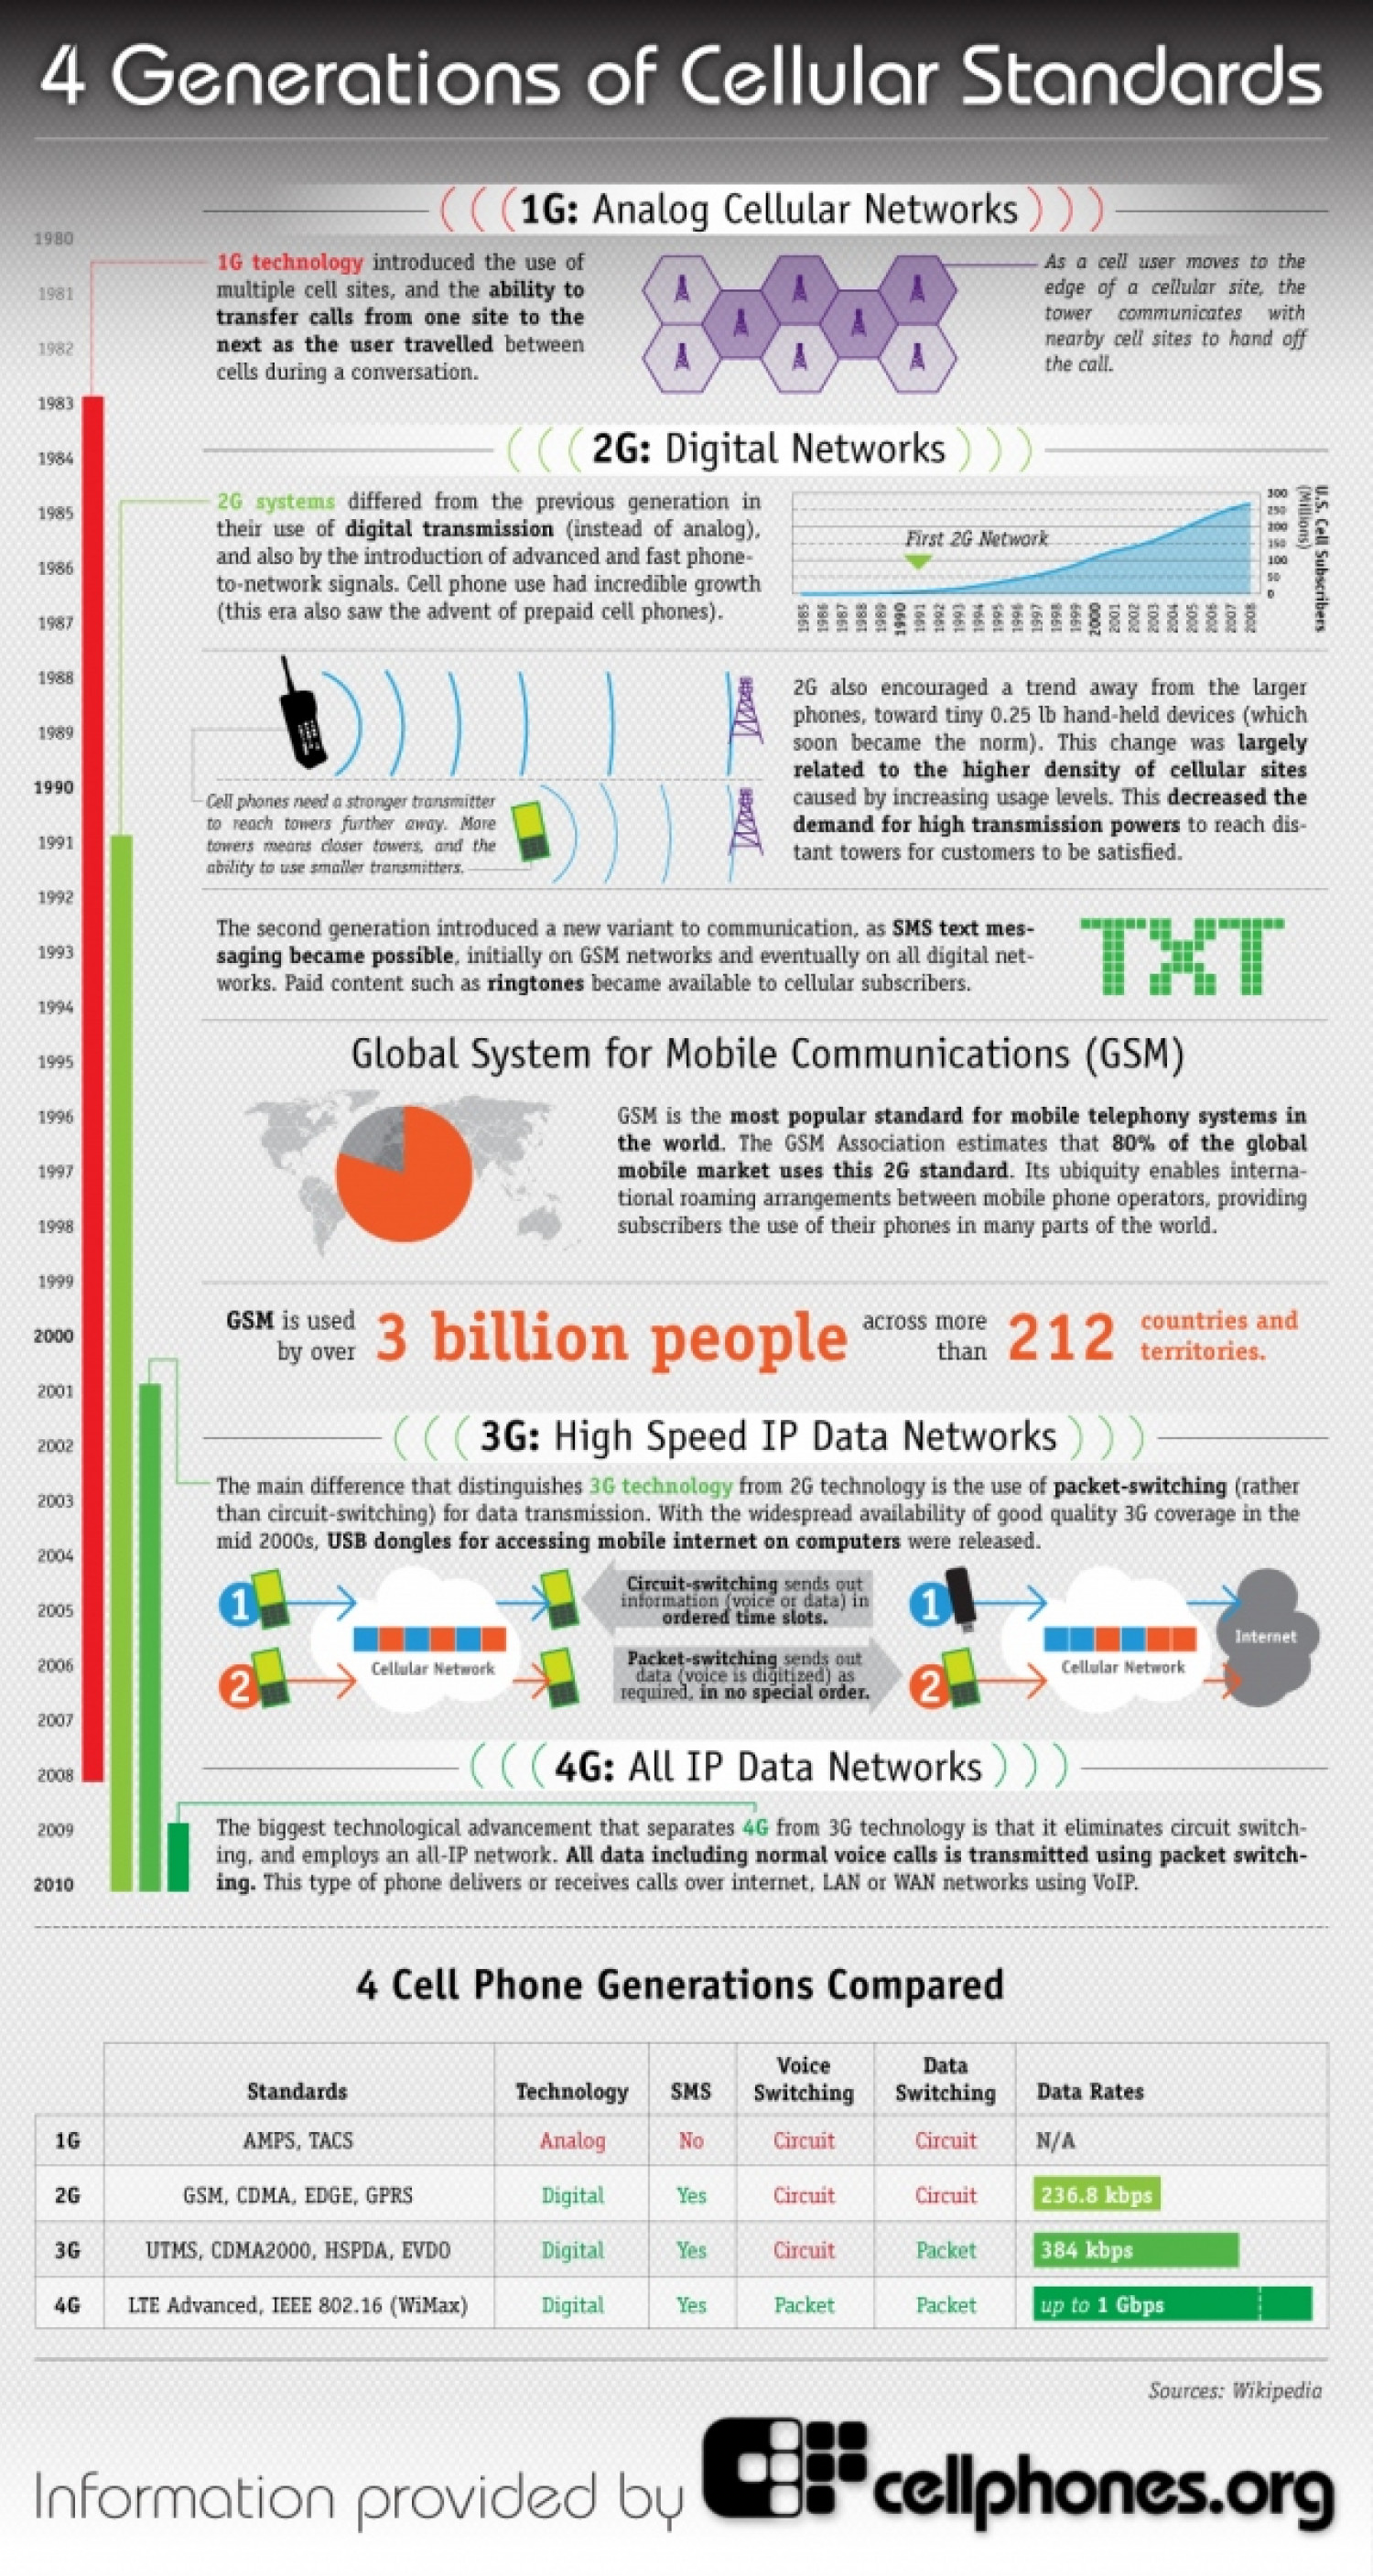 cellular digital packet data information technology essay Cellular digital packet data systems offer what is currently one of the most advanced means of wireless data transmission technology generally used as a tool for business, cdpd holds promises for improving law enforcement communications and operations.